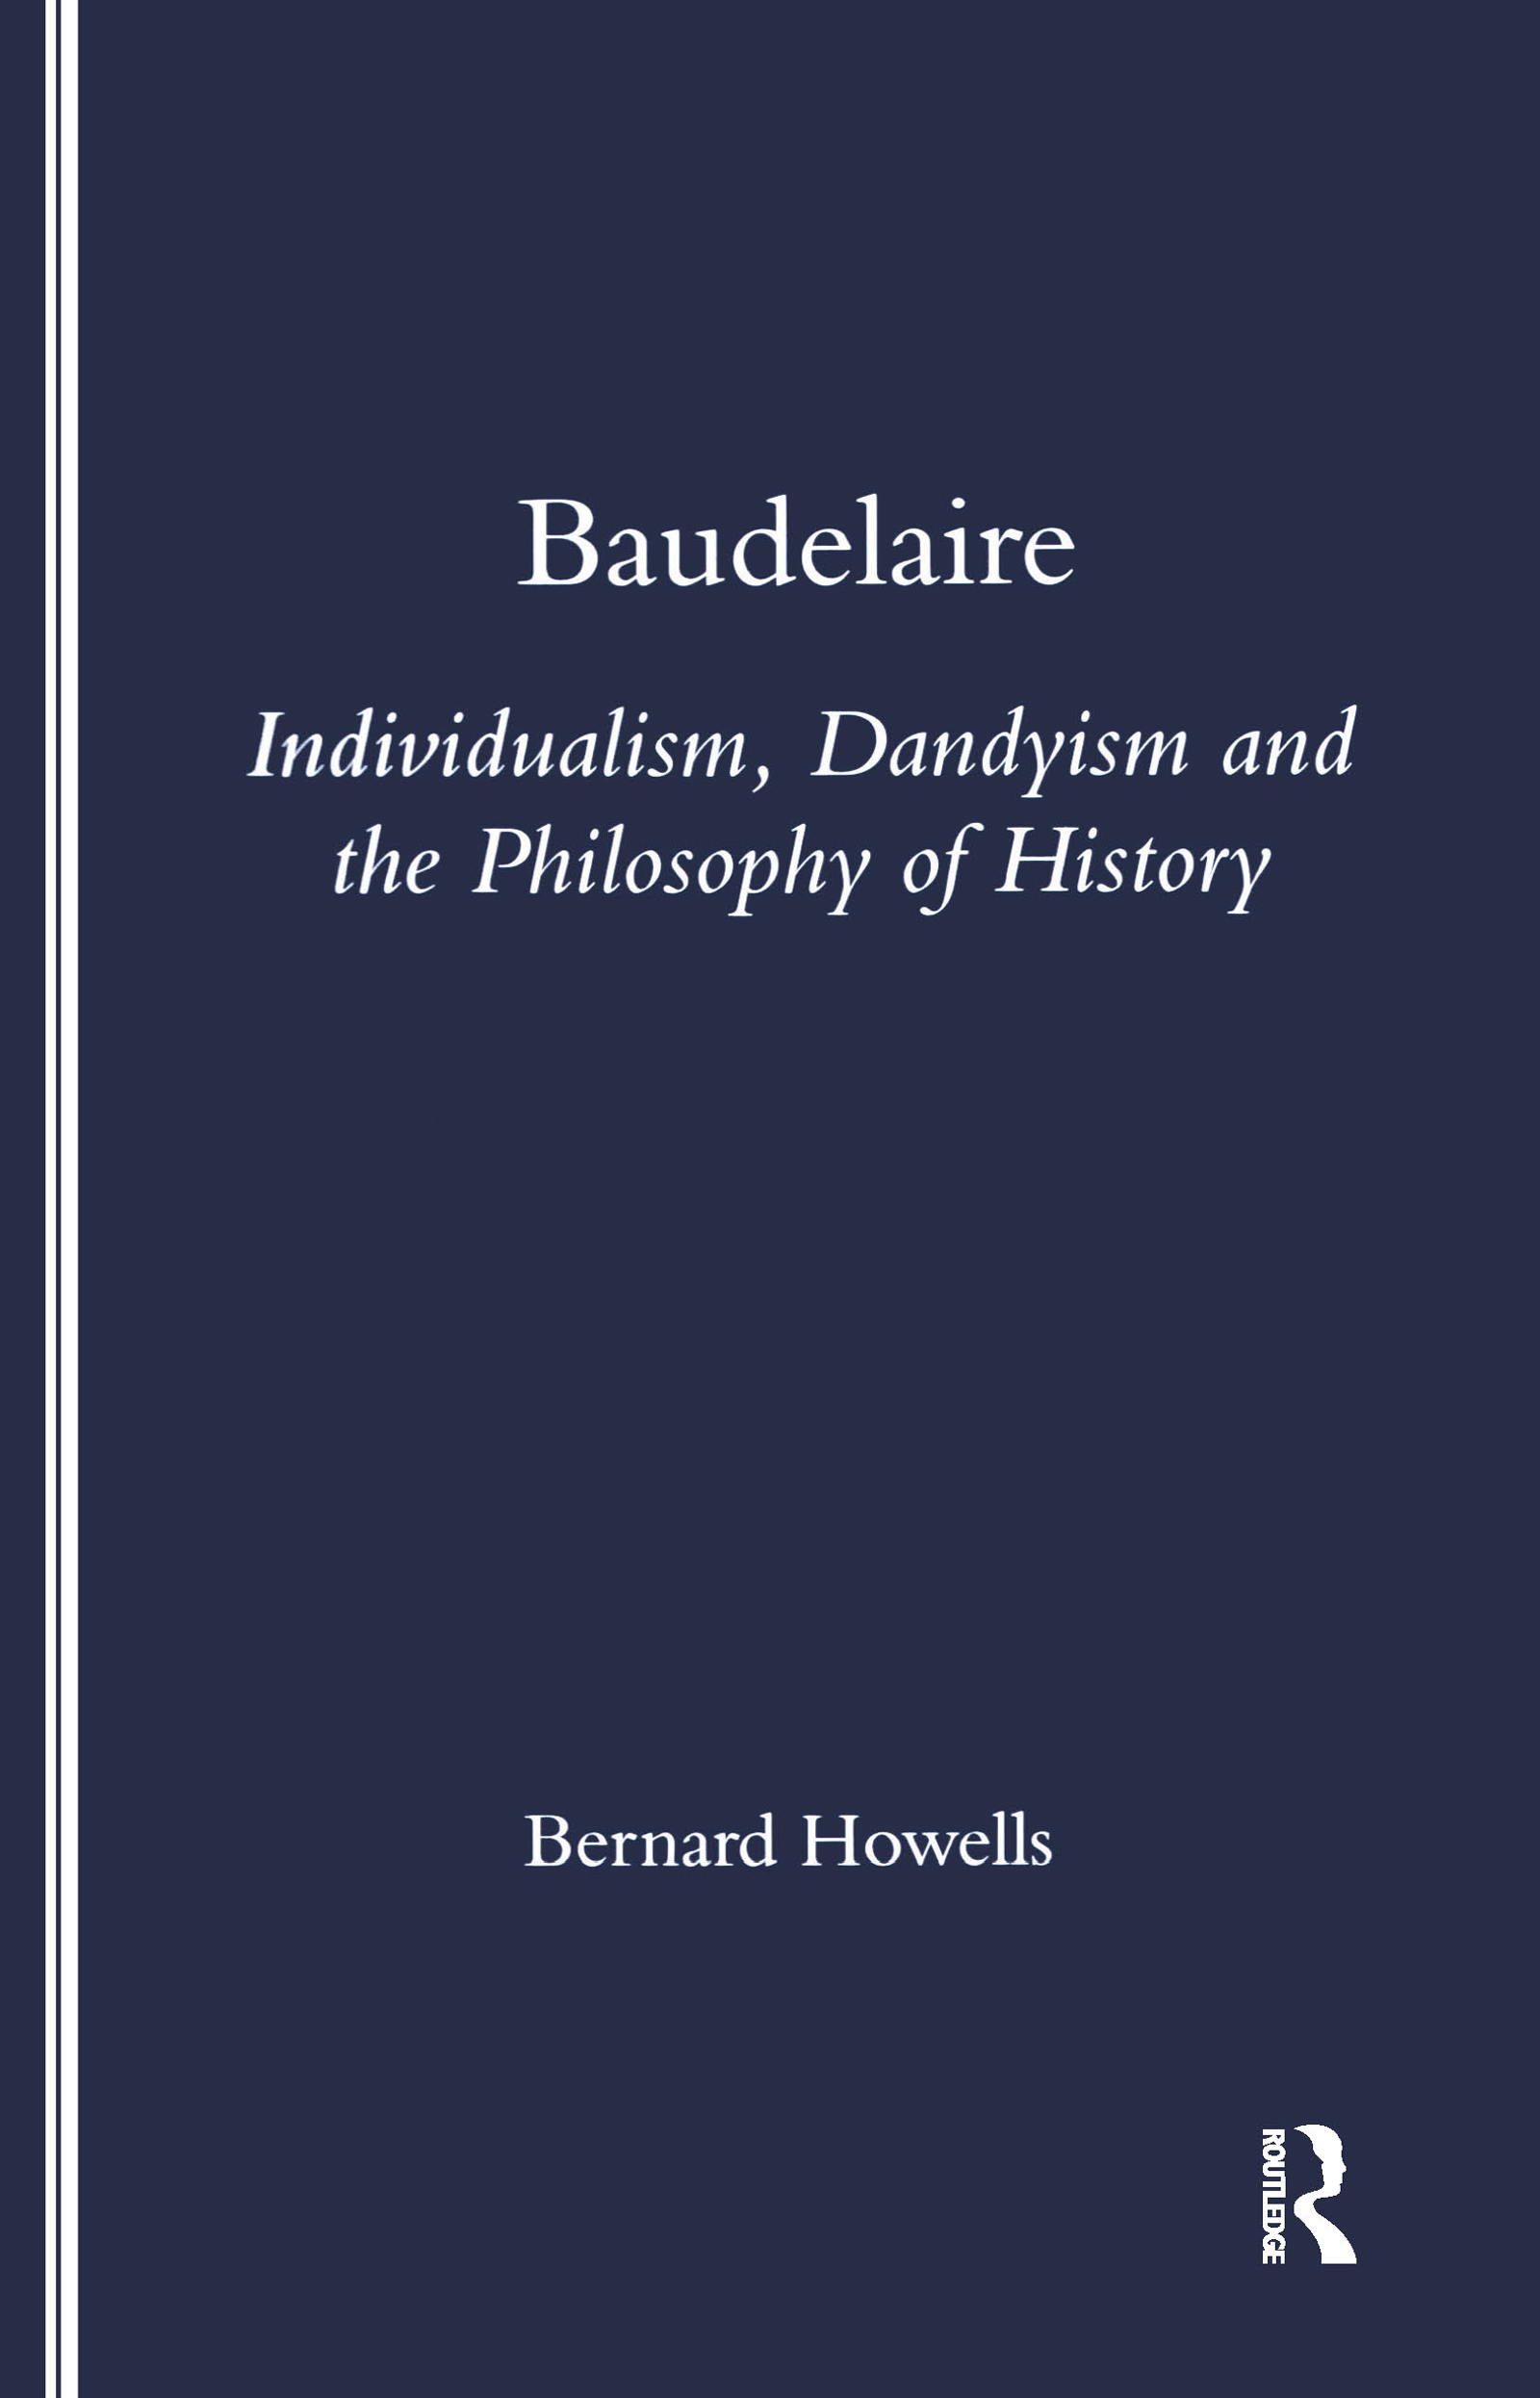 Baudelaire: Individualism, Dandyism and the Philosophy of History, 1st Edition (Paperback) book cover